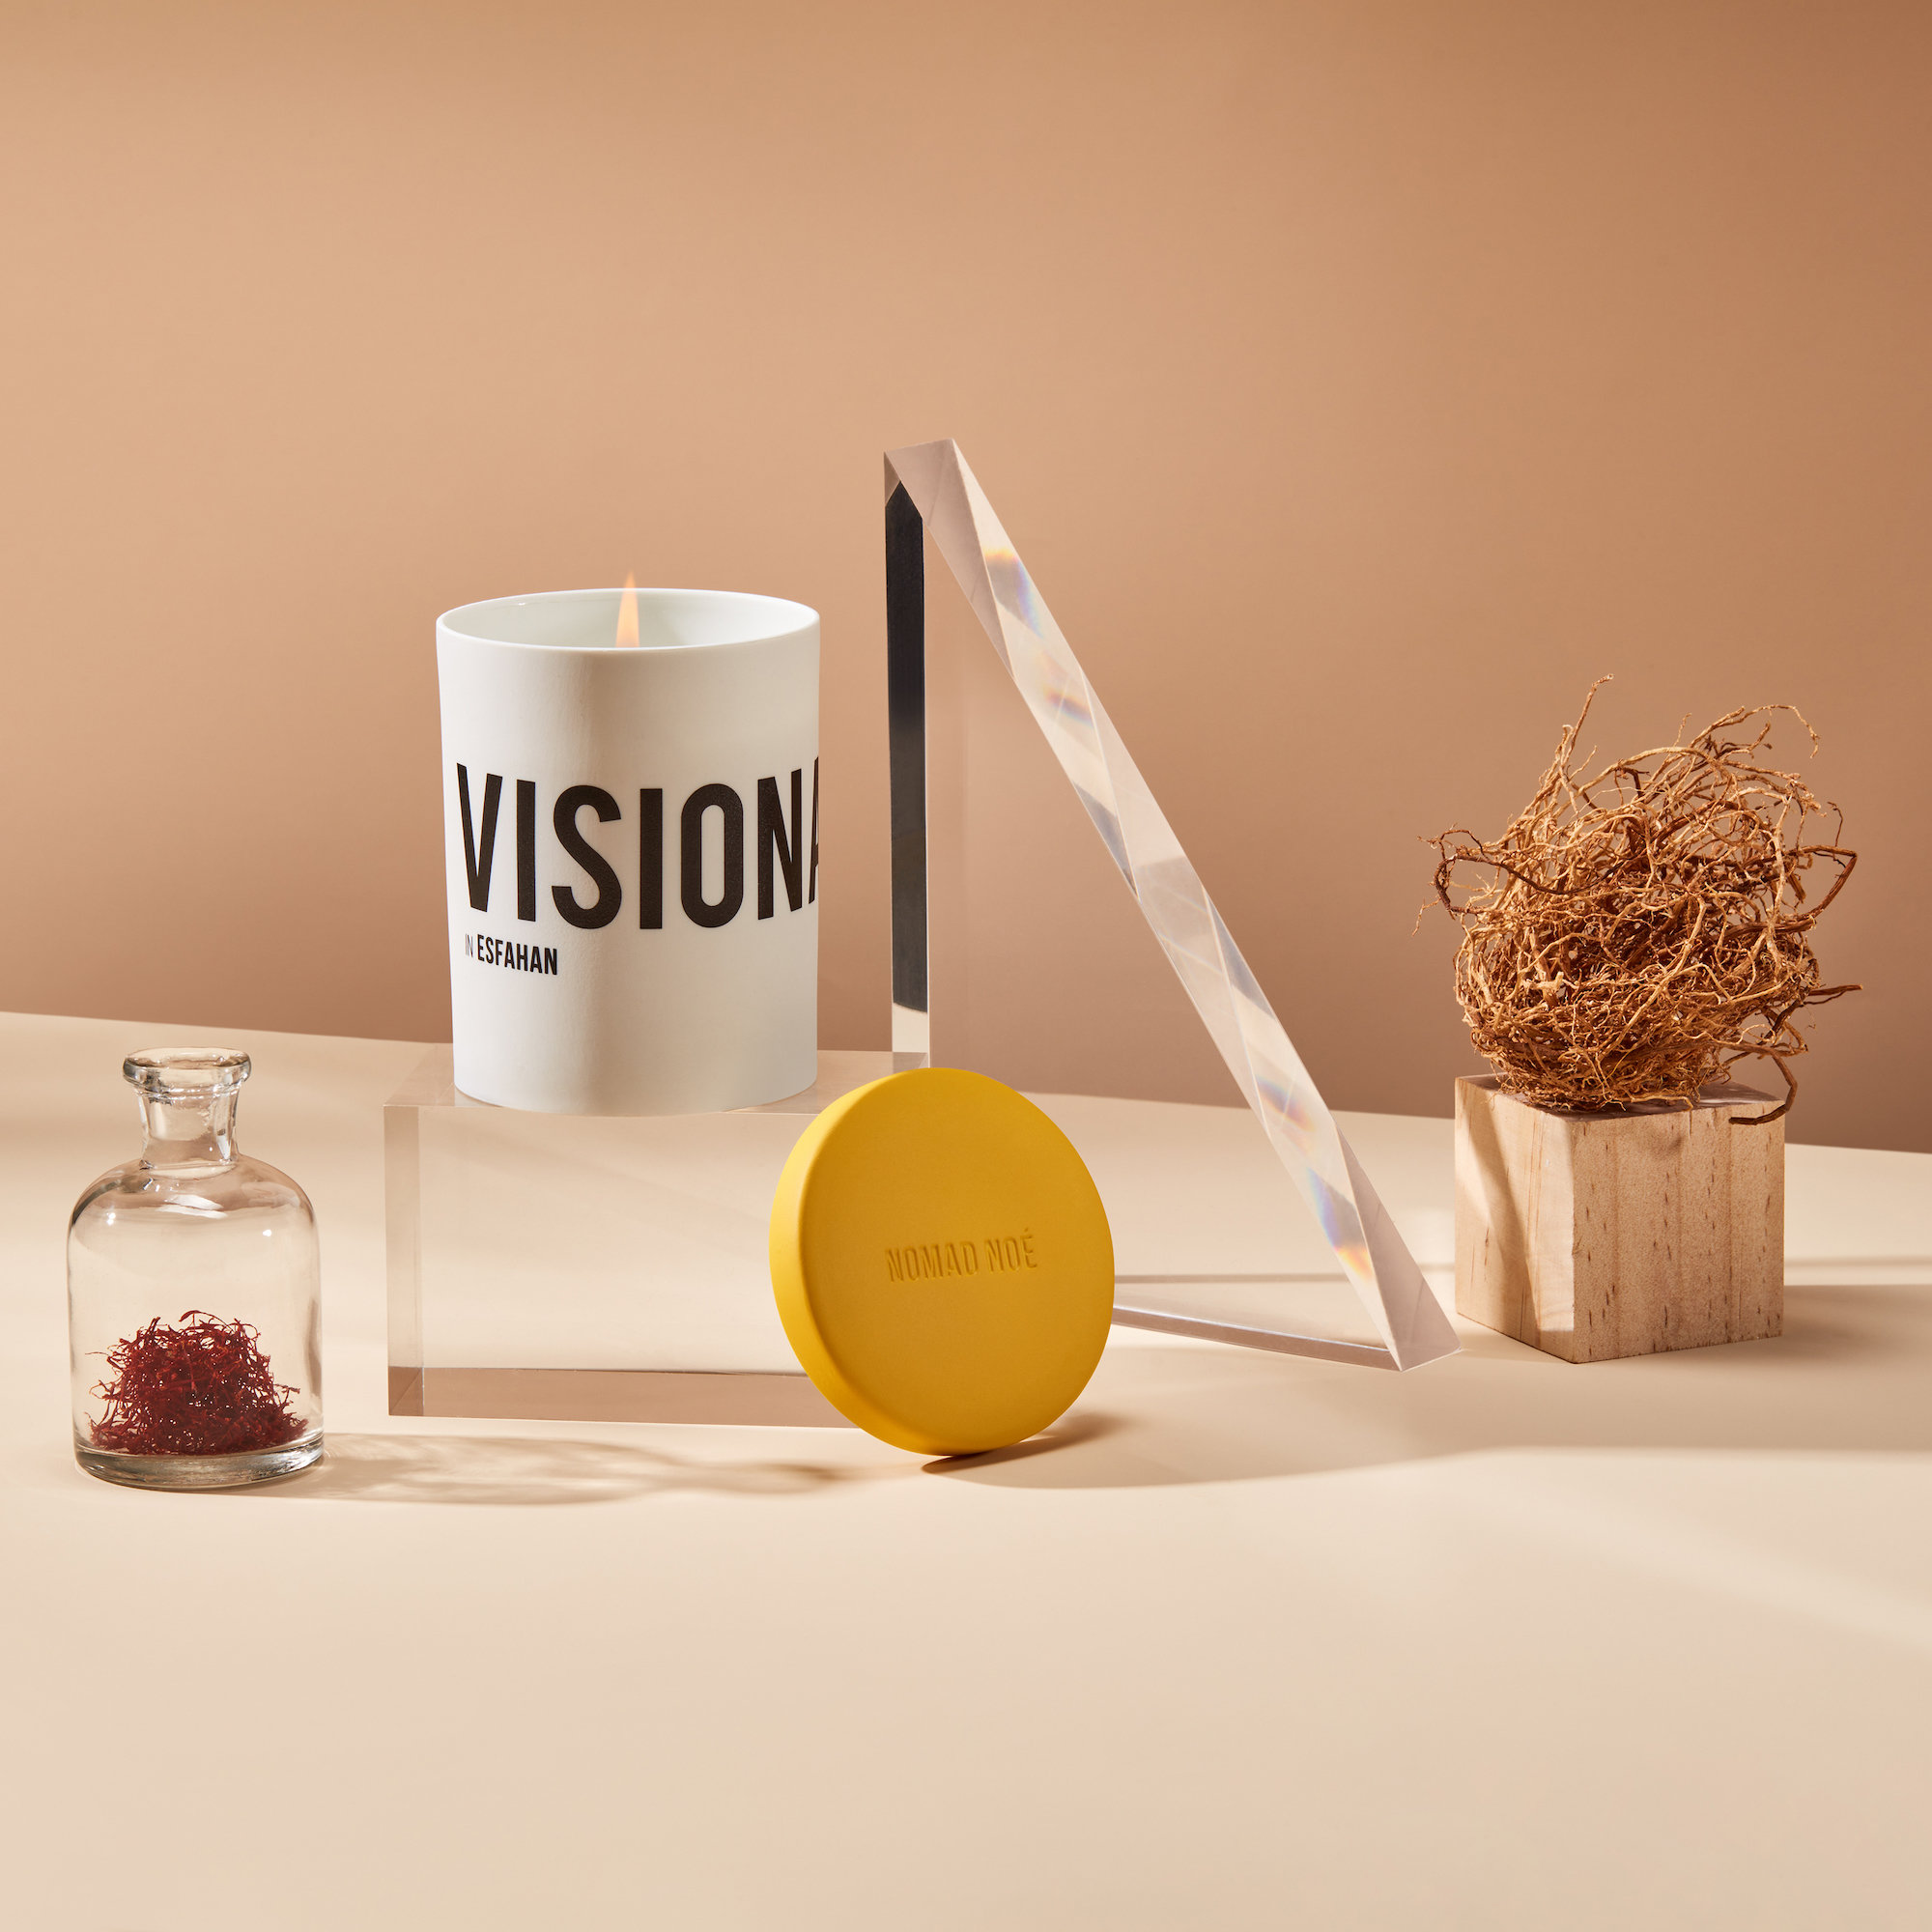 Alternate product image for Visionary In Esfahan - Saffron & Rose Candle shown with the description.